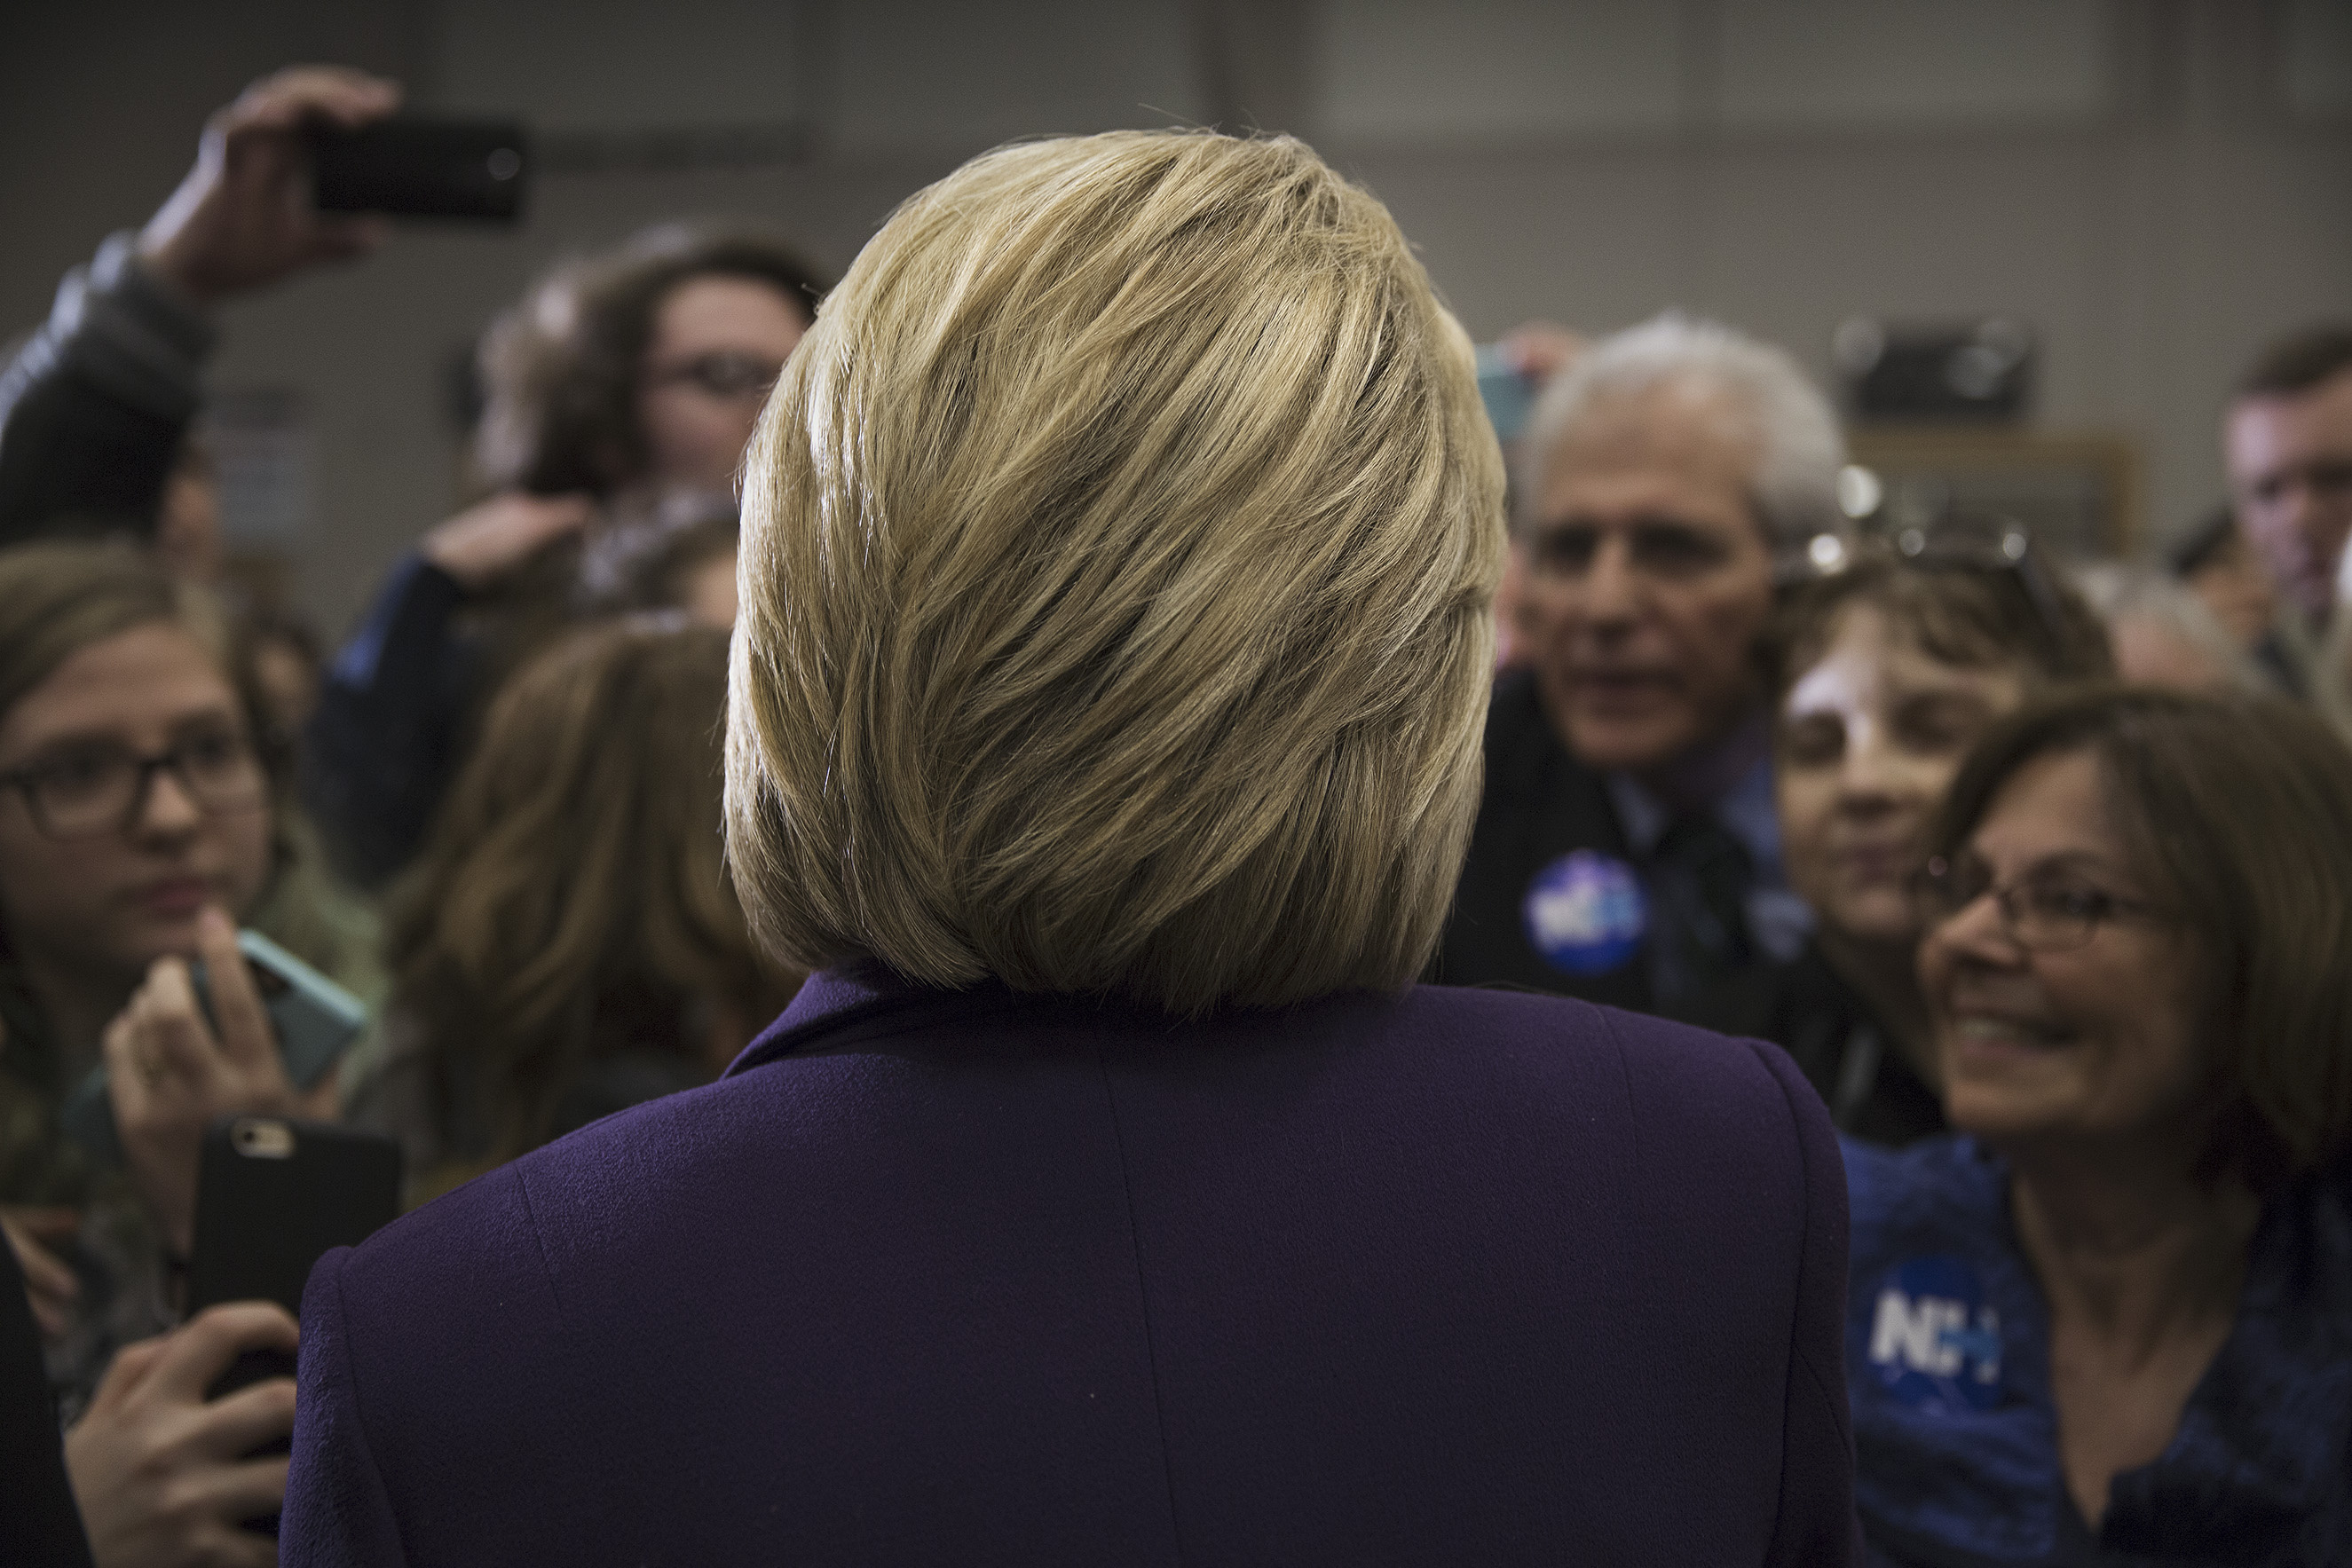 Democratic Presidential candidate Hillary Clinton talks to supporters while campaigning at Winnacunnet High School in Hampton, N.H. Feb. 2, 2016.From  What It's Like to Photograph Hillary Clinton